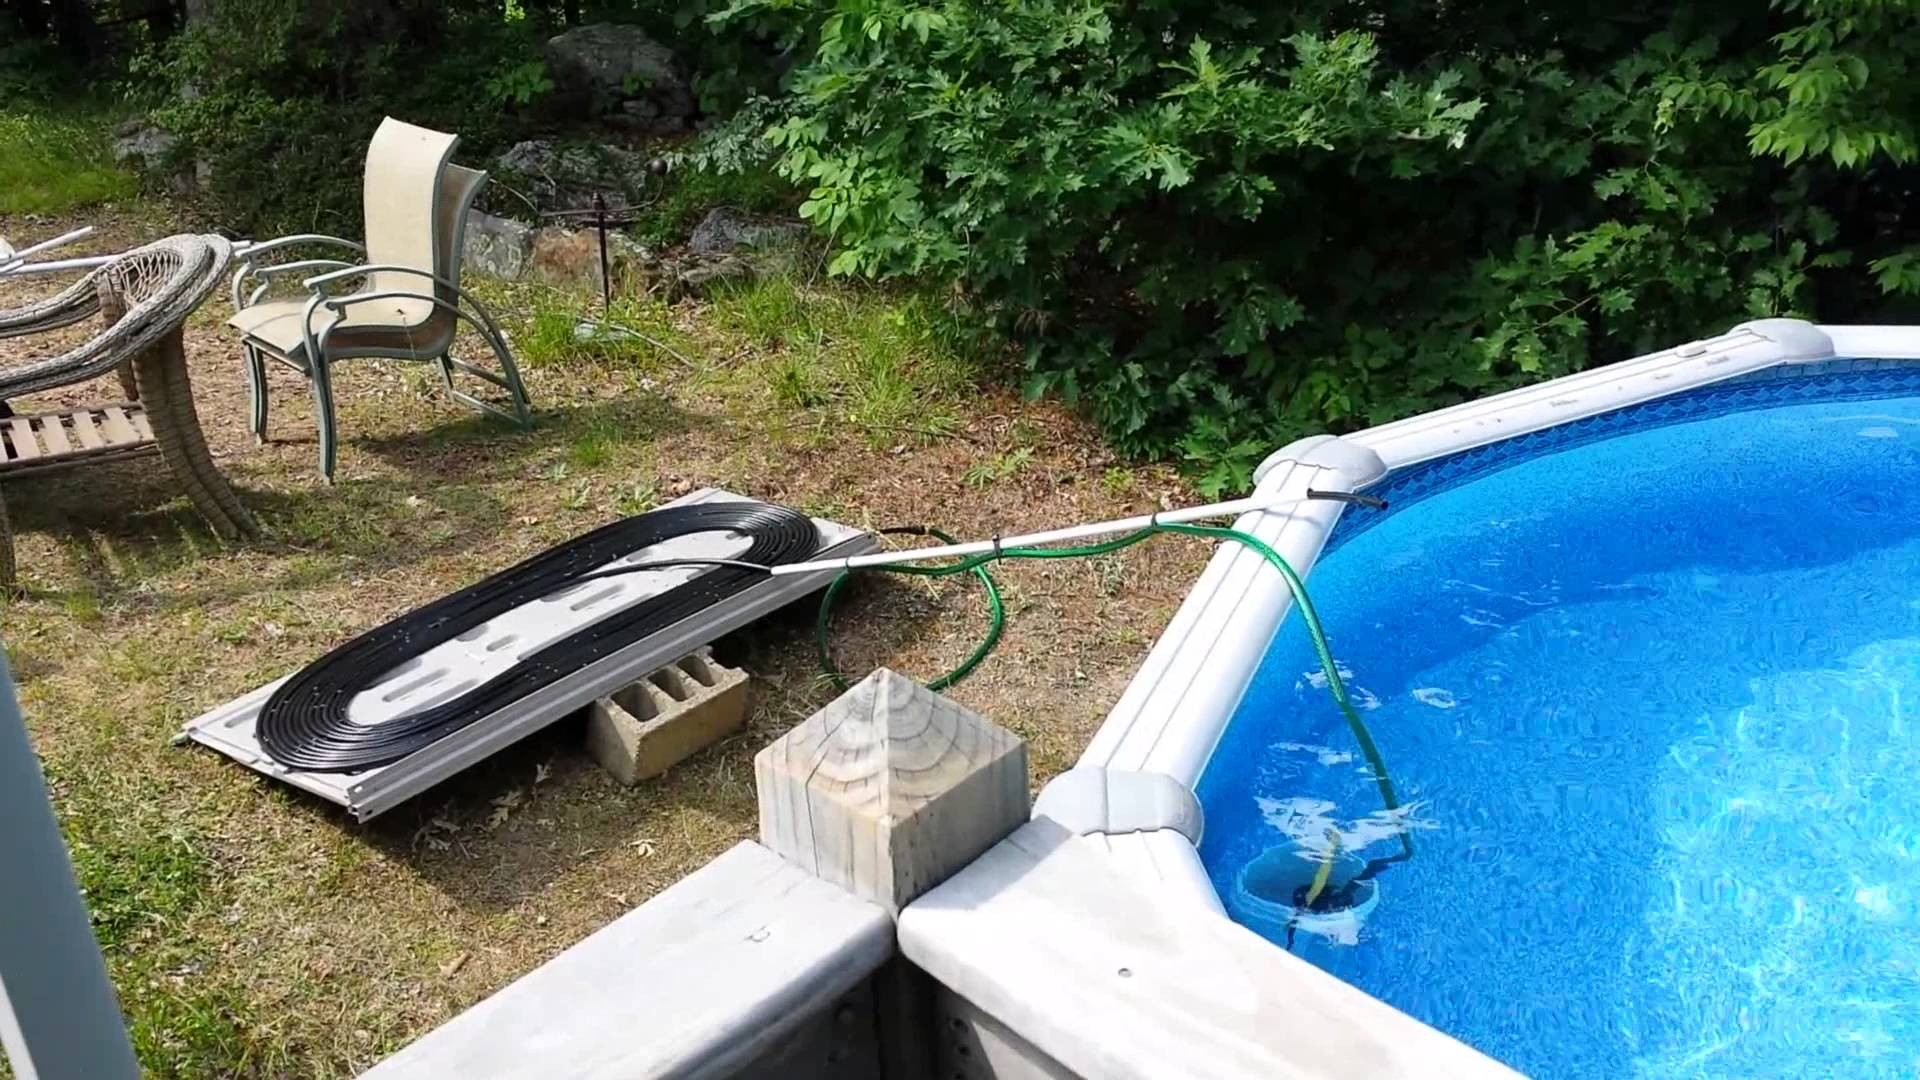 Pool Heaters For Inground Pools